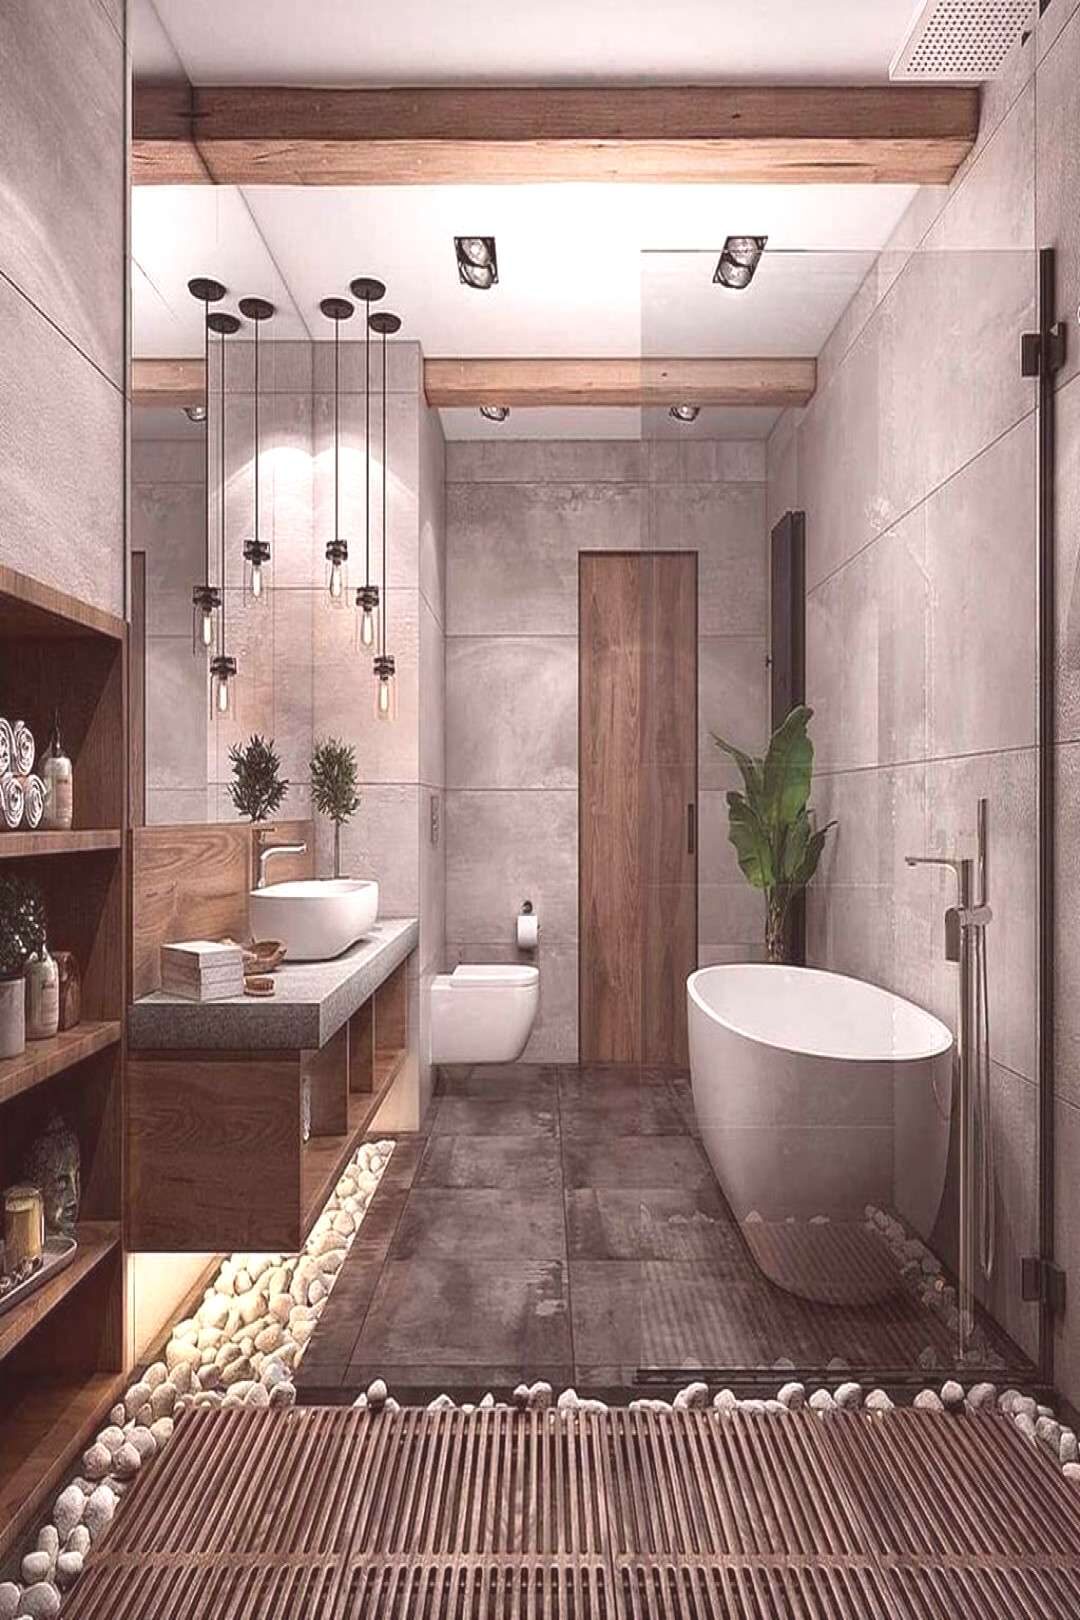 30+ Best Contemporary Bathroom Design Ideas To Try 30+ Best Contemporary Bathroom Design Ideas To T